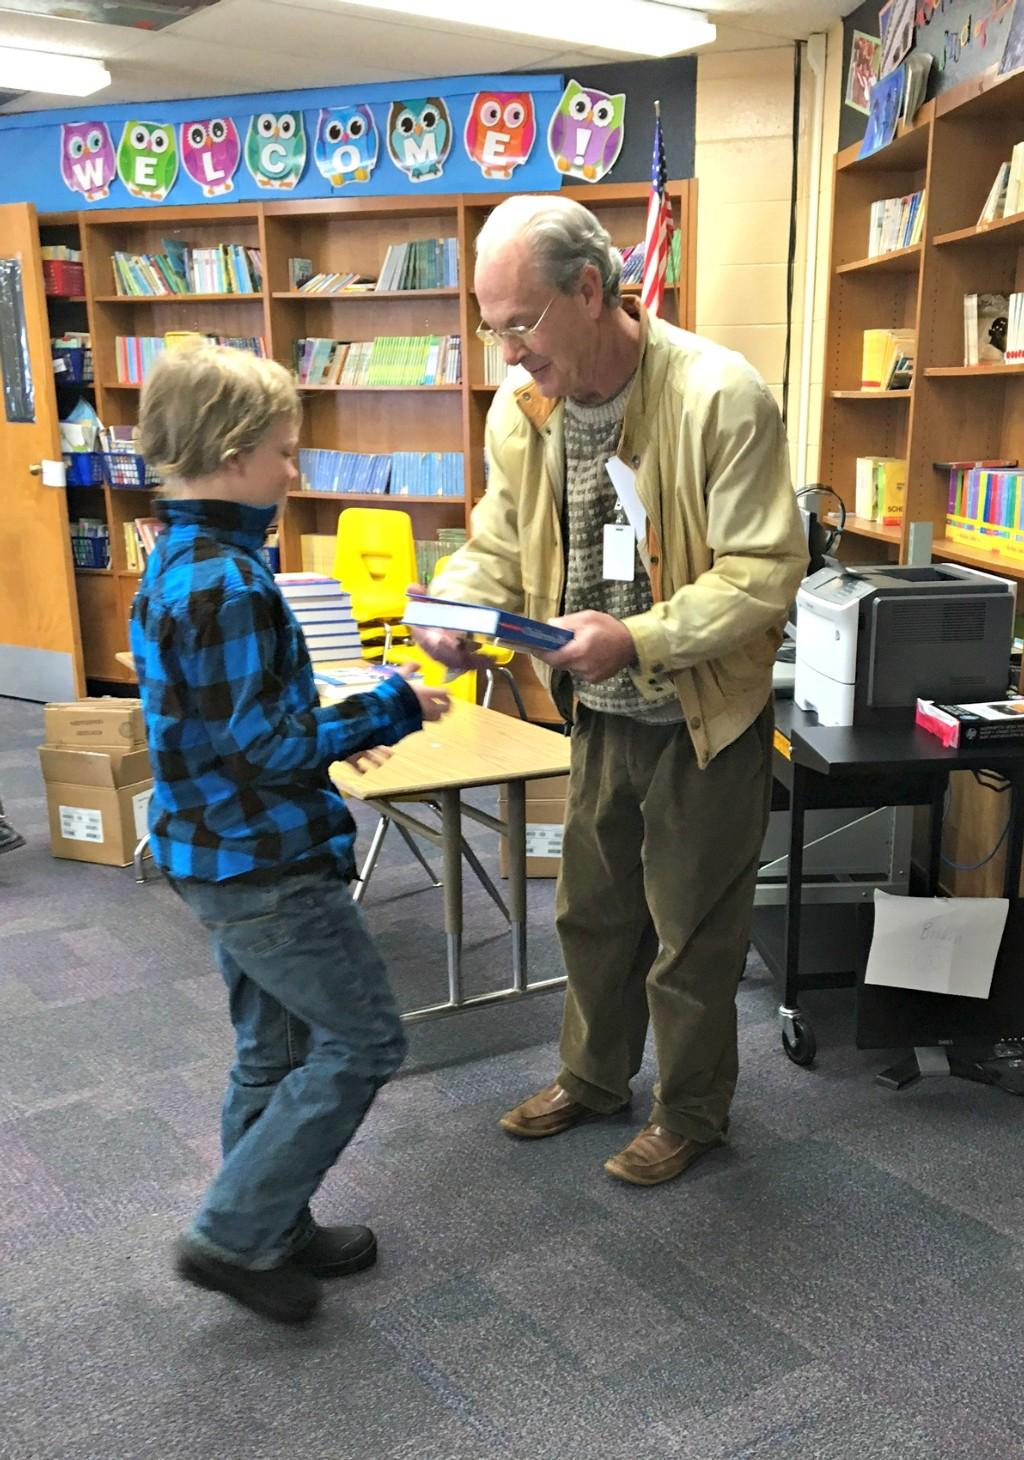 Rotary Club member handing out dictionary to student